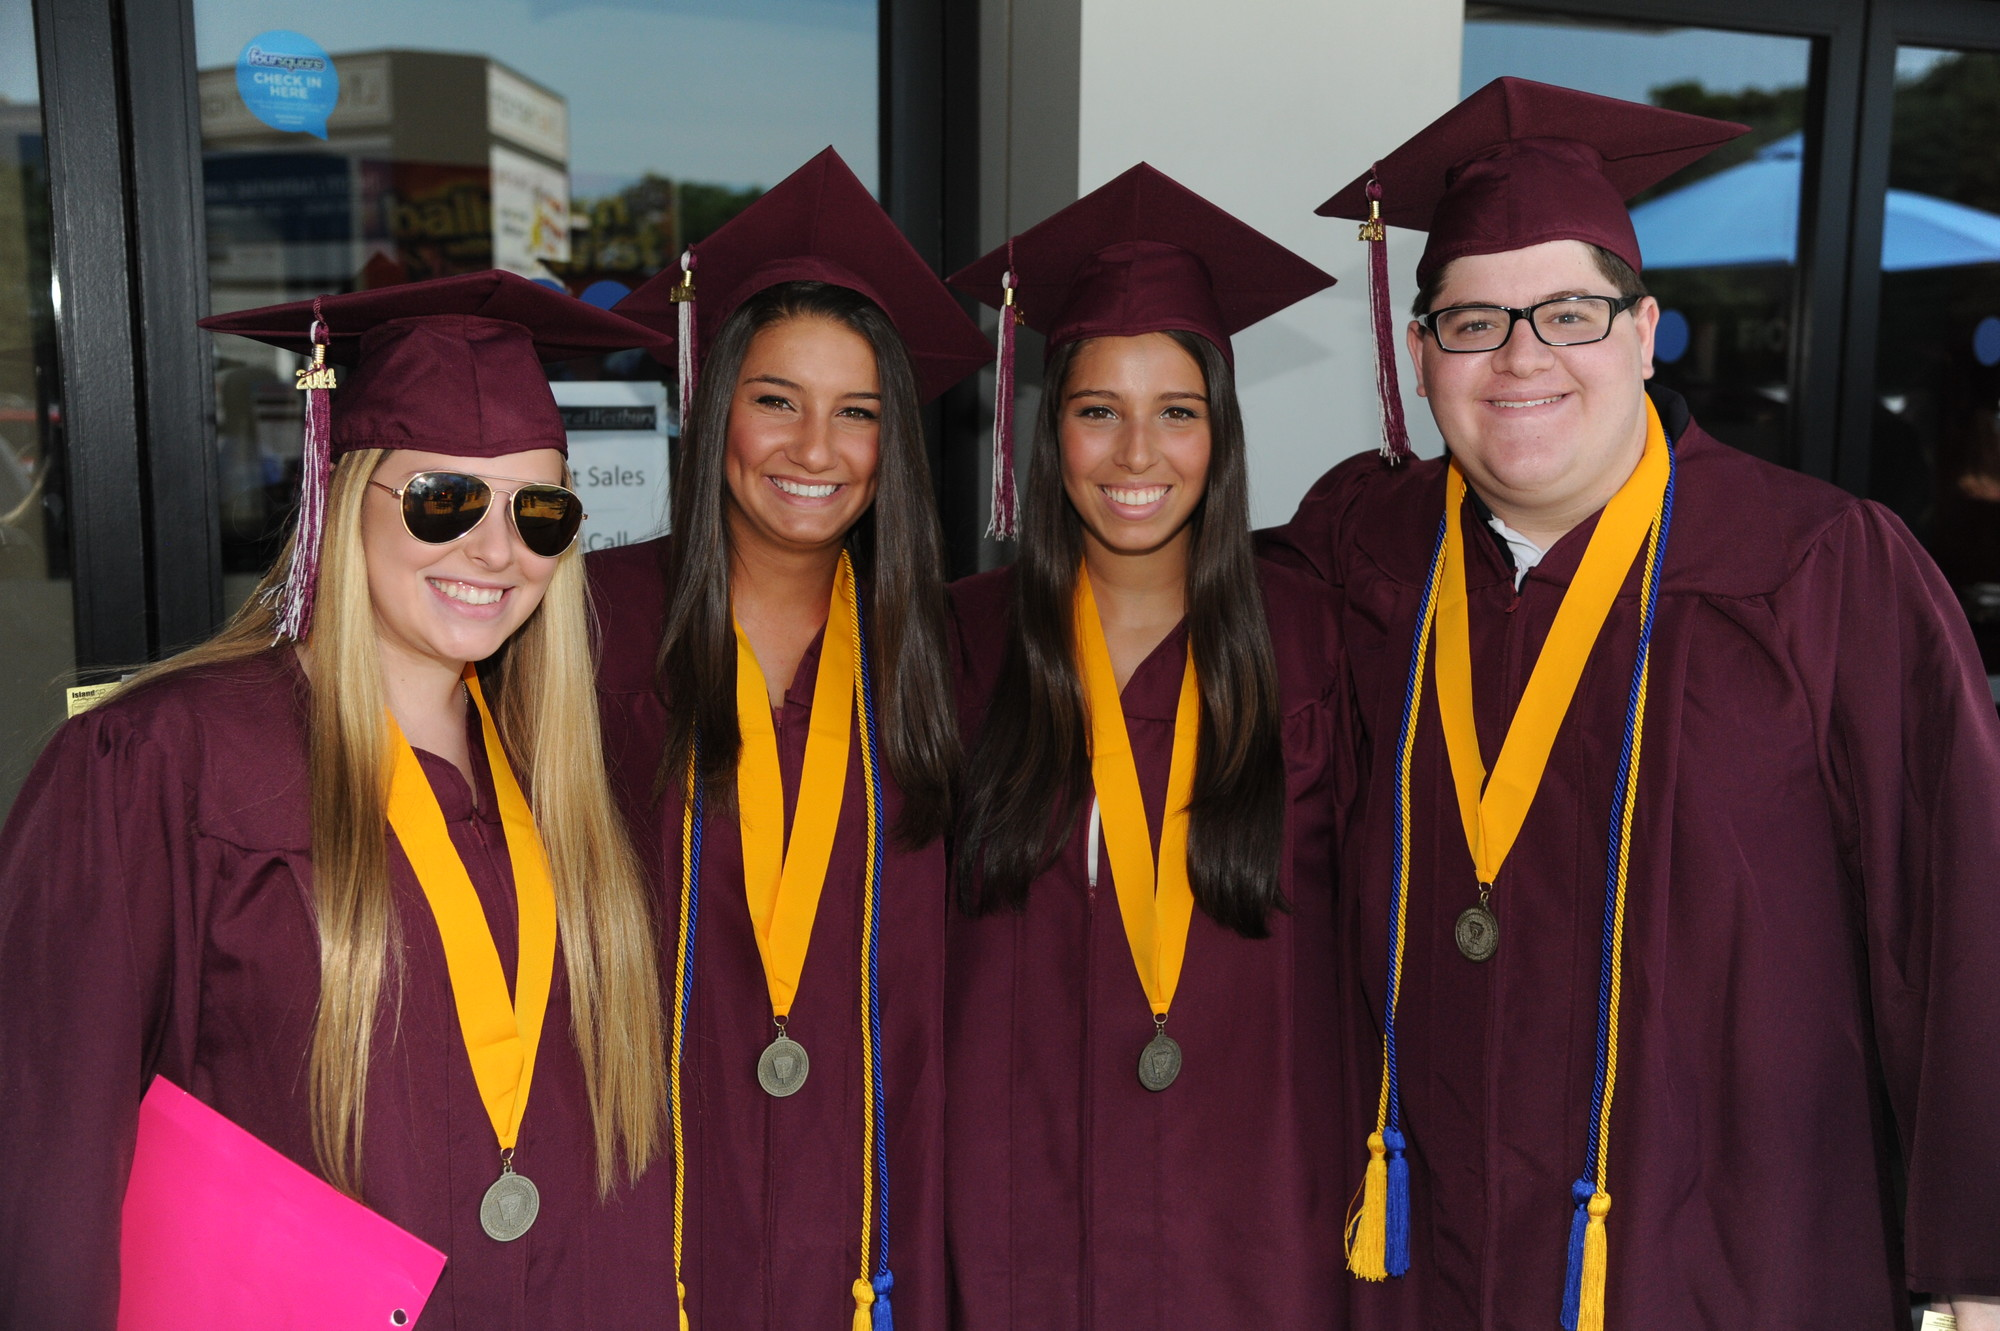 Class President Rachel Fain, Secretary Victoria Ponce, Vice President Samantha Scoca and Treasurer Daniel Gluck led their classmates into the NYCB Theatre at Westbury.